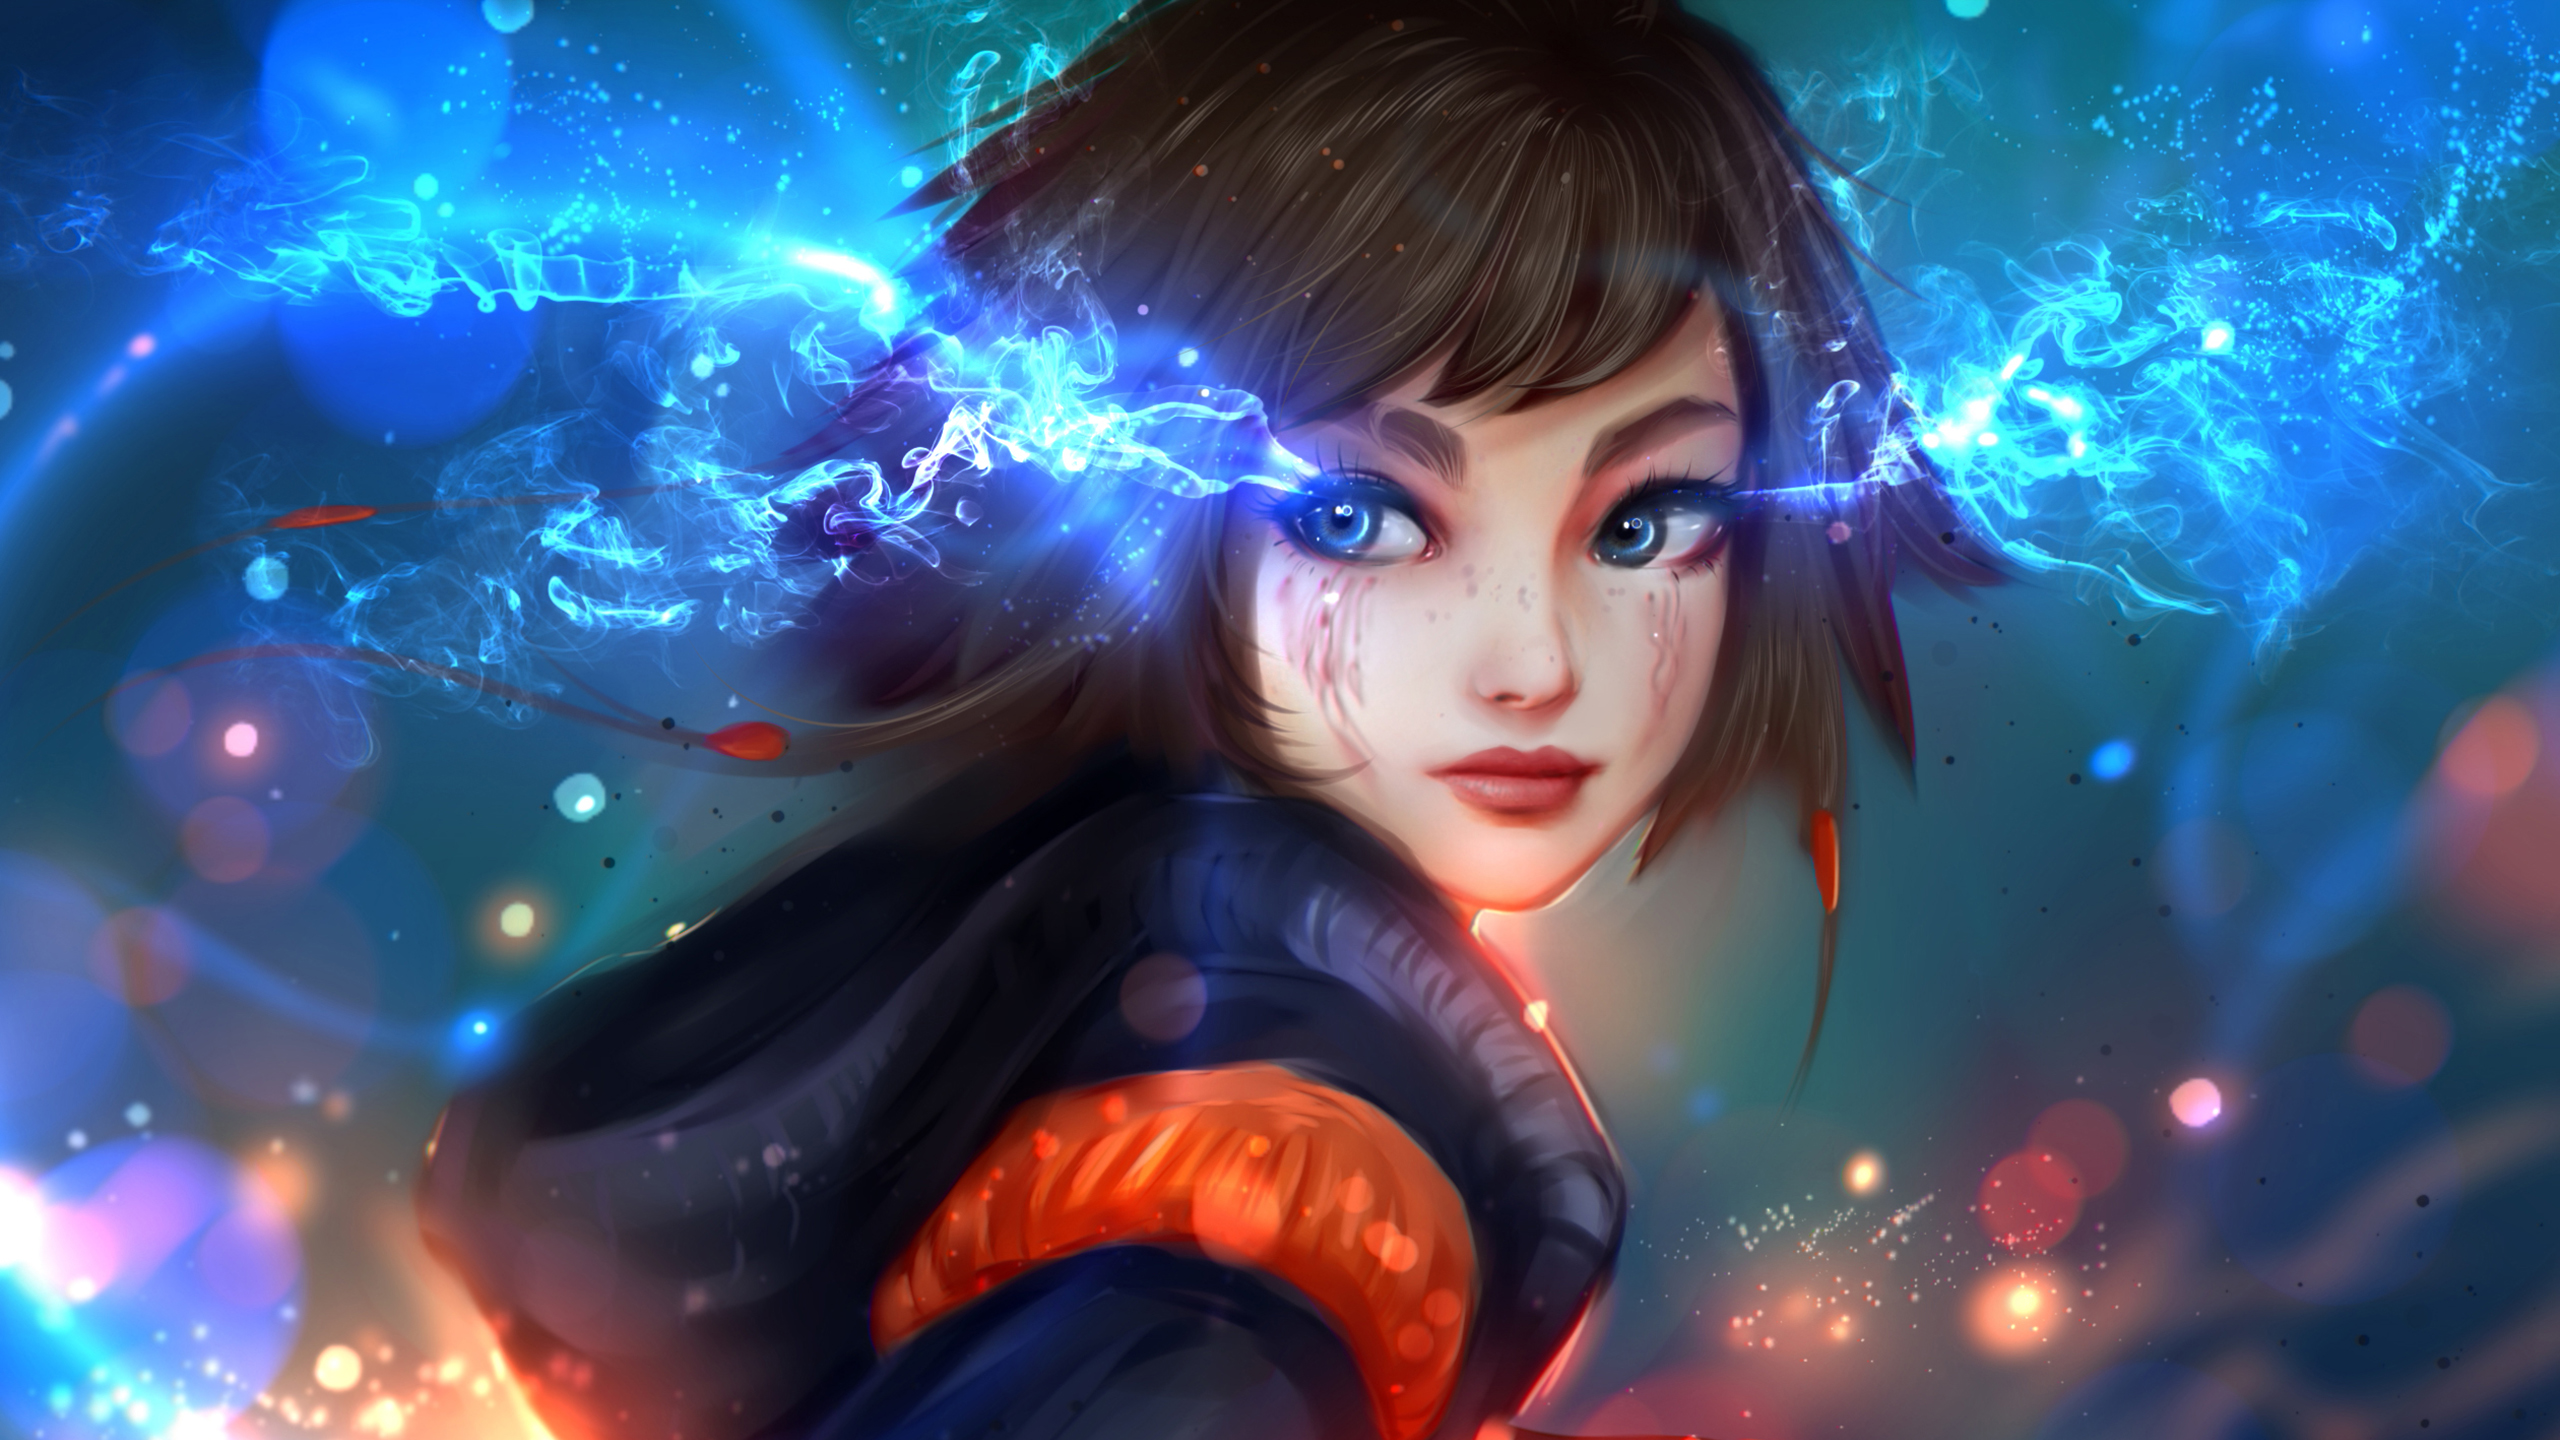 Blue Eyed Fantasy Girl Wallpapers Hd Wallpapers